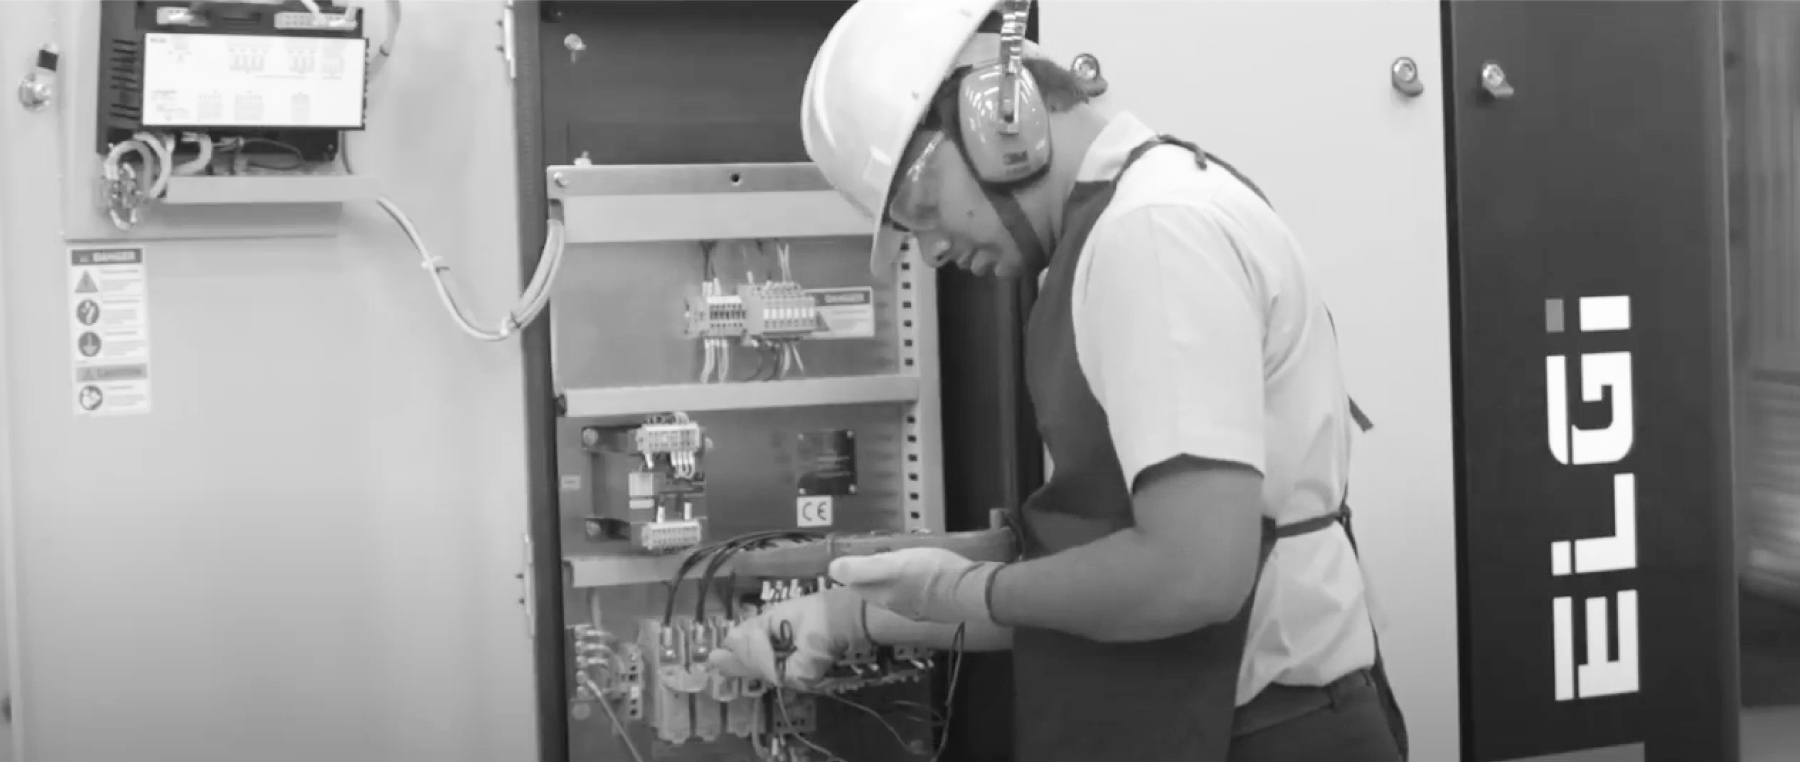 Smart solutions for troubleshooting your compressed air system